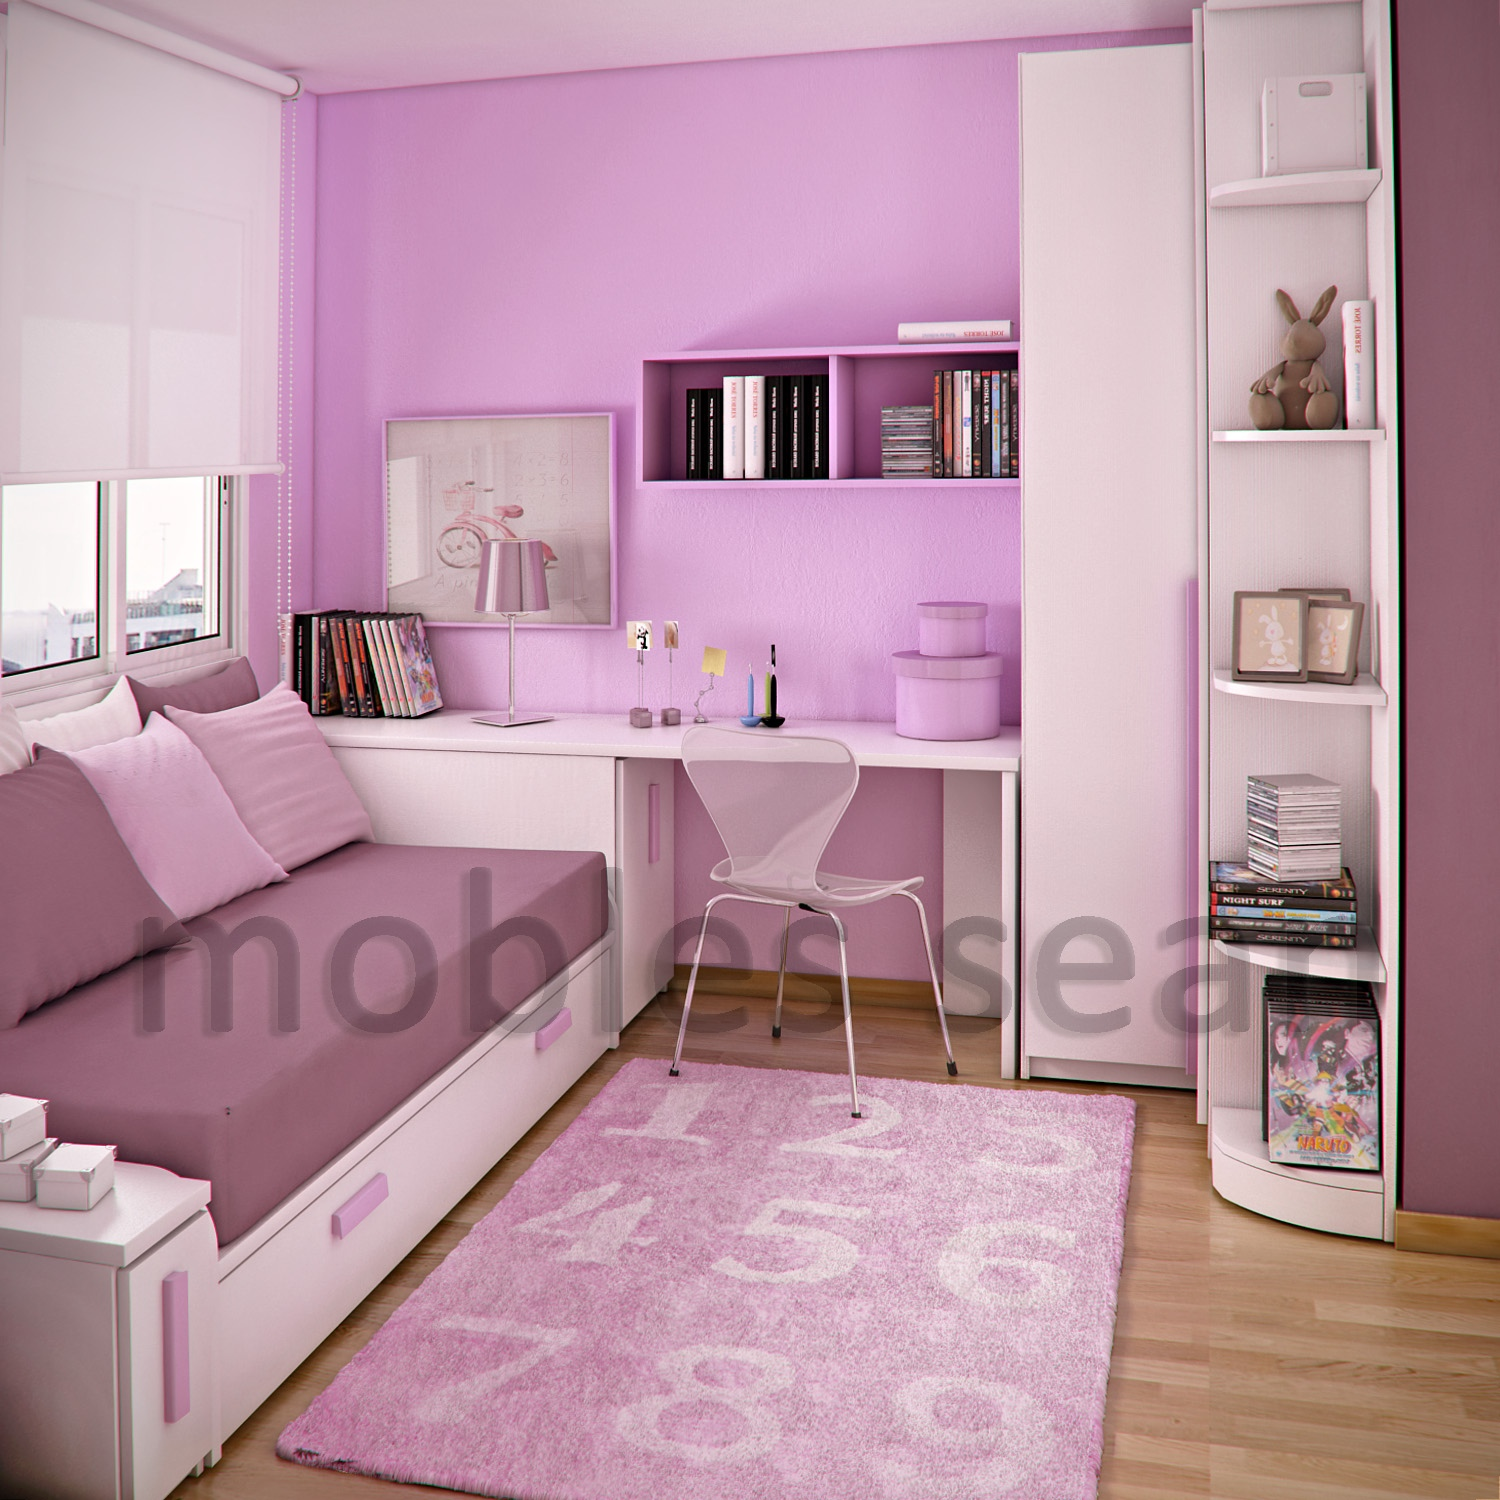 Bedroom Ideas Small Rooms Part - 19: Interior Design Ideas